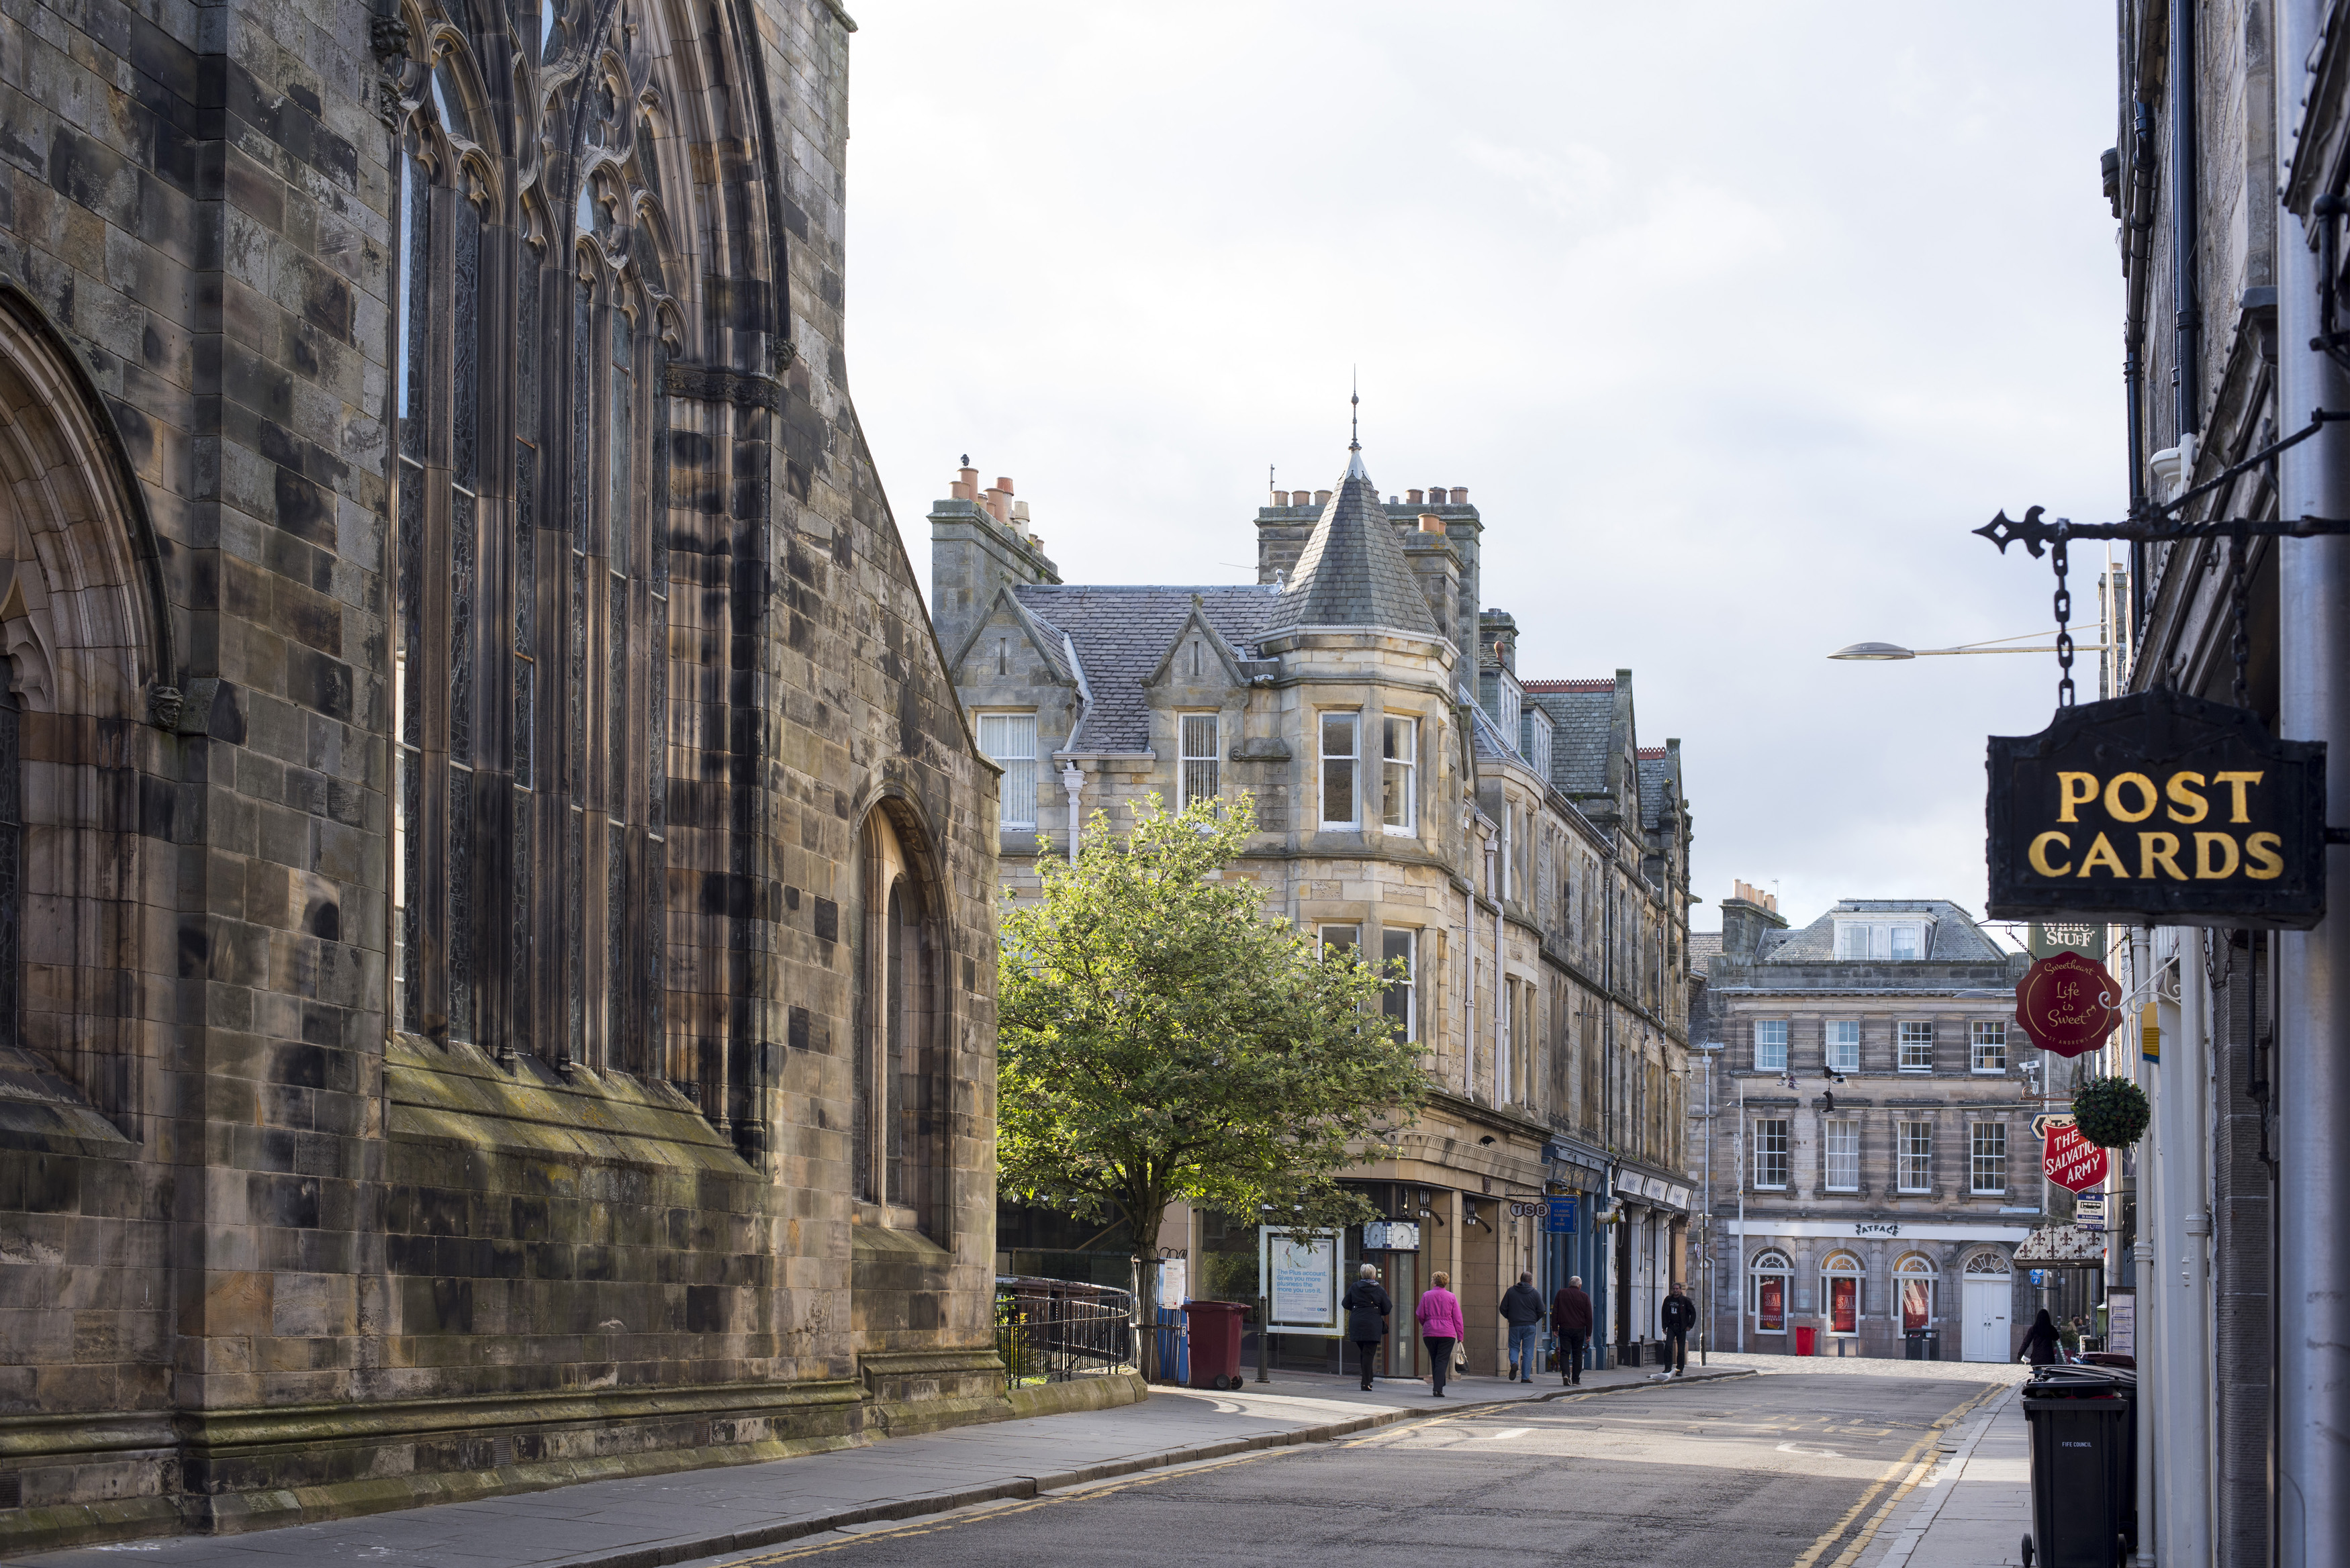 Street view in the historic town of St Andrews, Scotland showing the old stone architecture, church and businesses